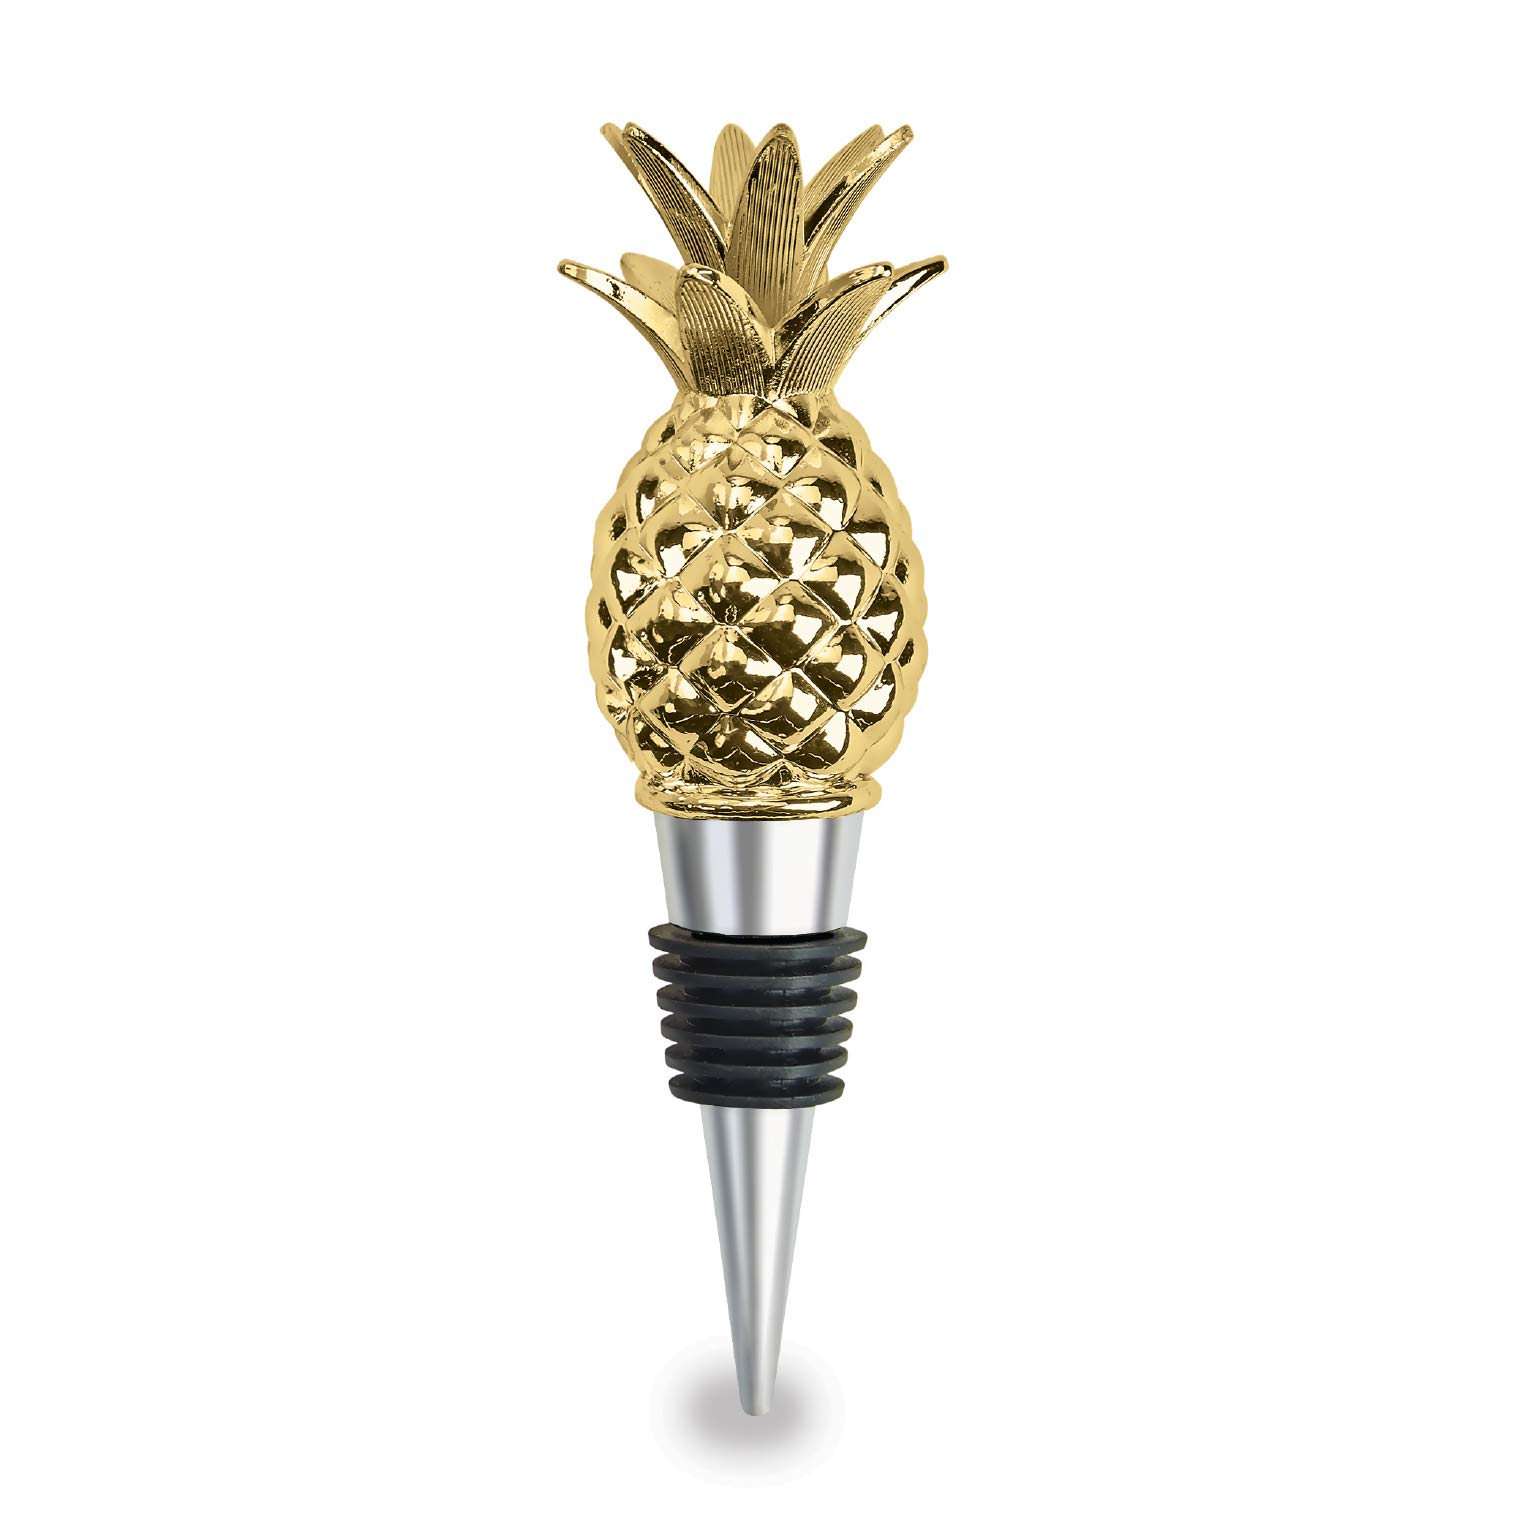 Wild Eye Designs Golden Pineapple Wine Stopper by Wild Eye Designs